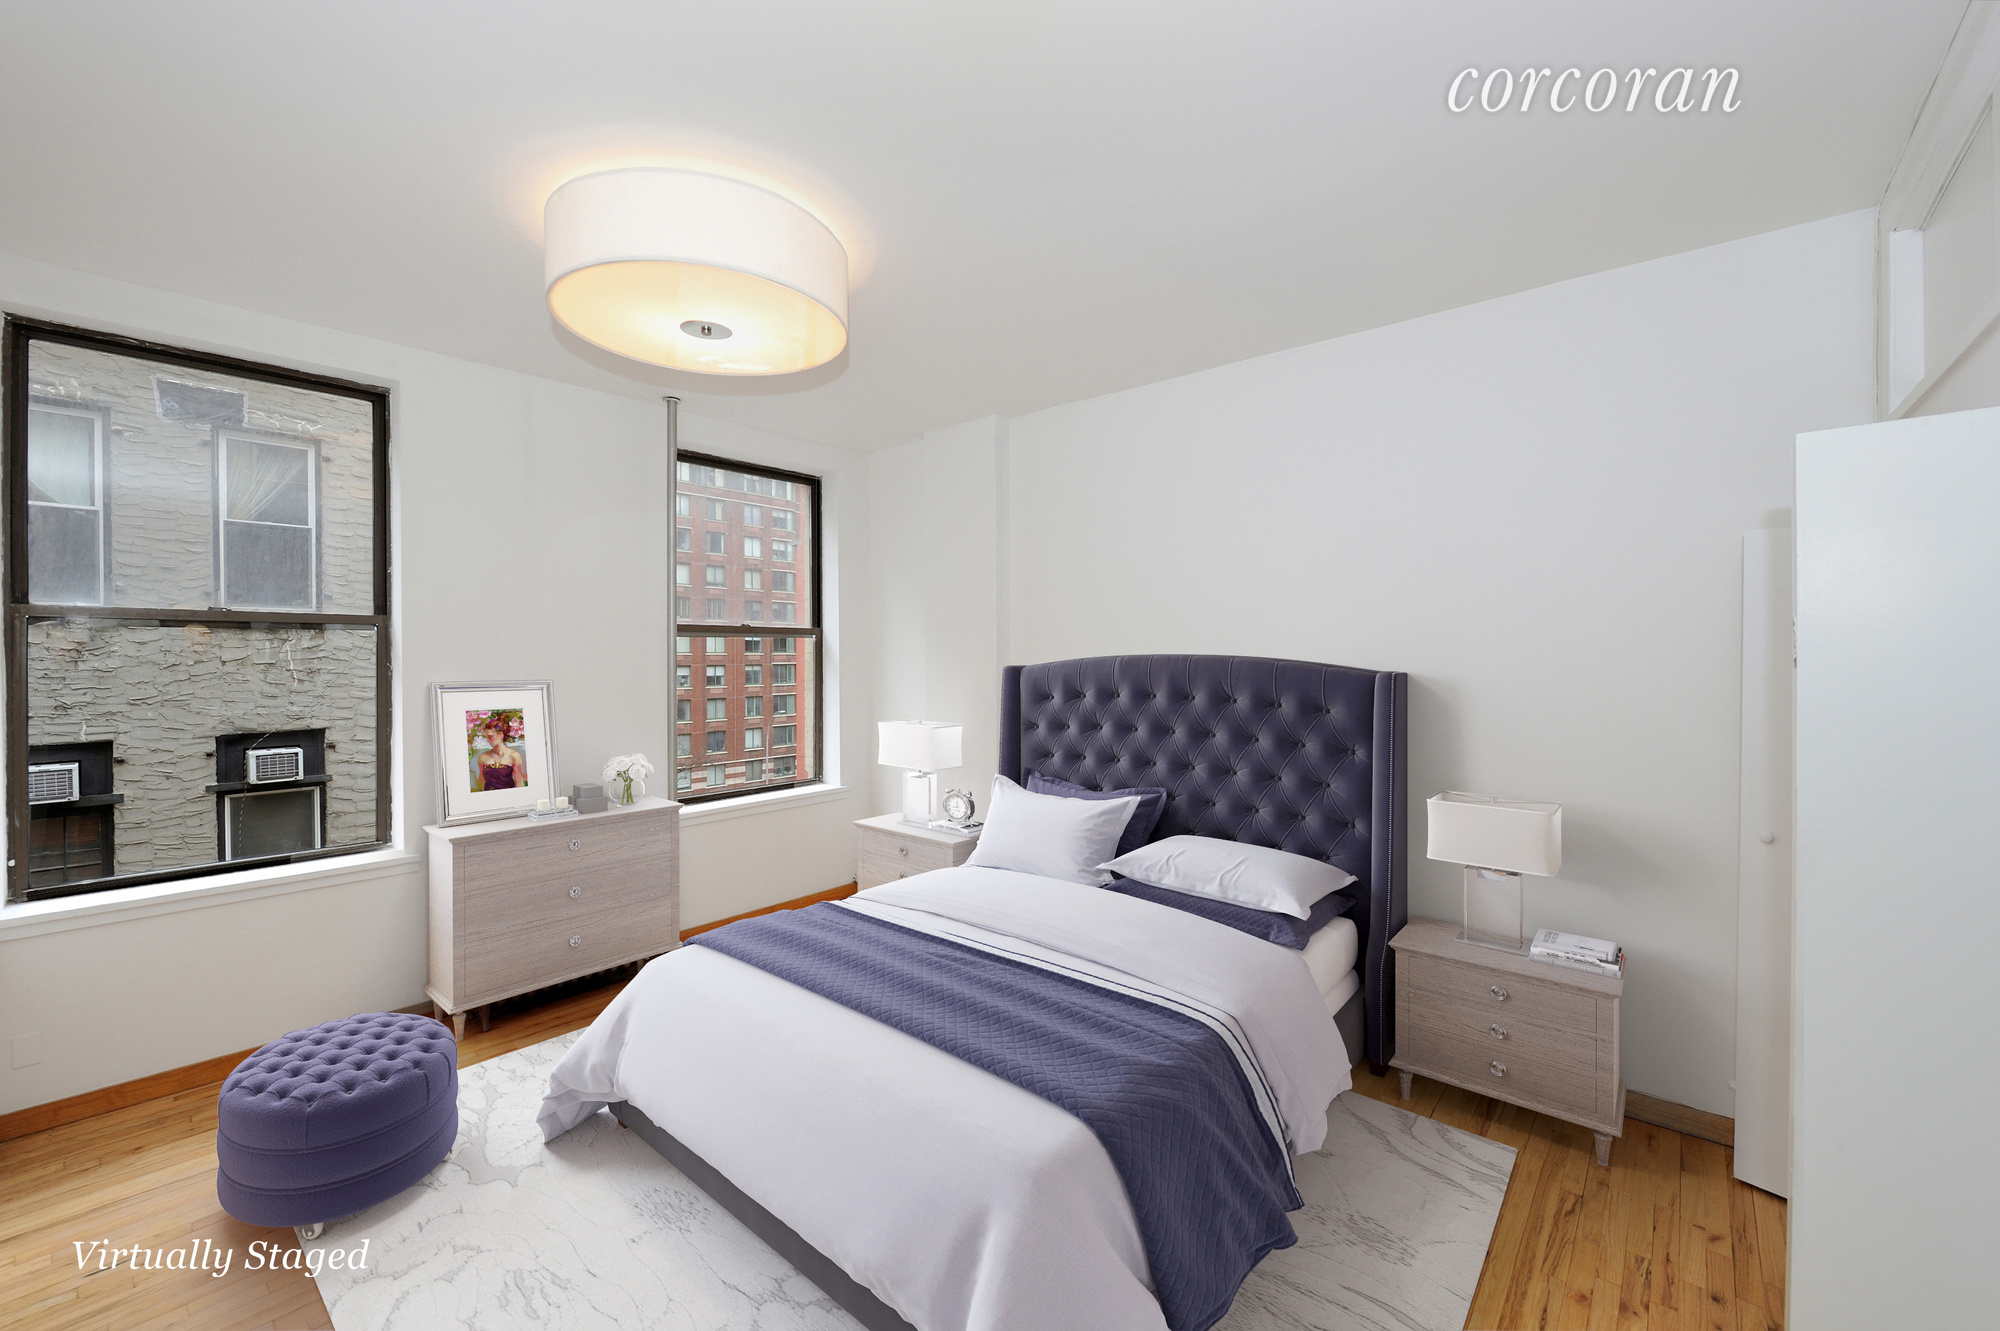 154 Chambers Street, Apt 3, Manhattan, New York 10007